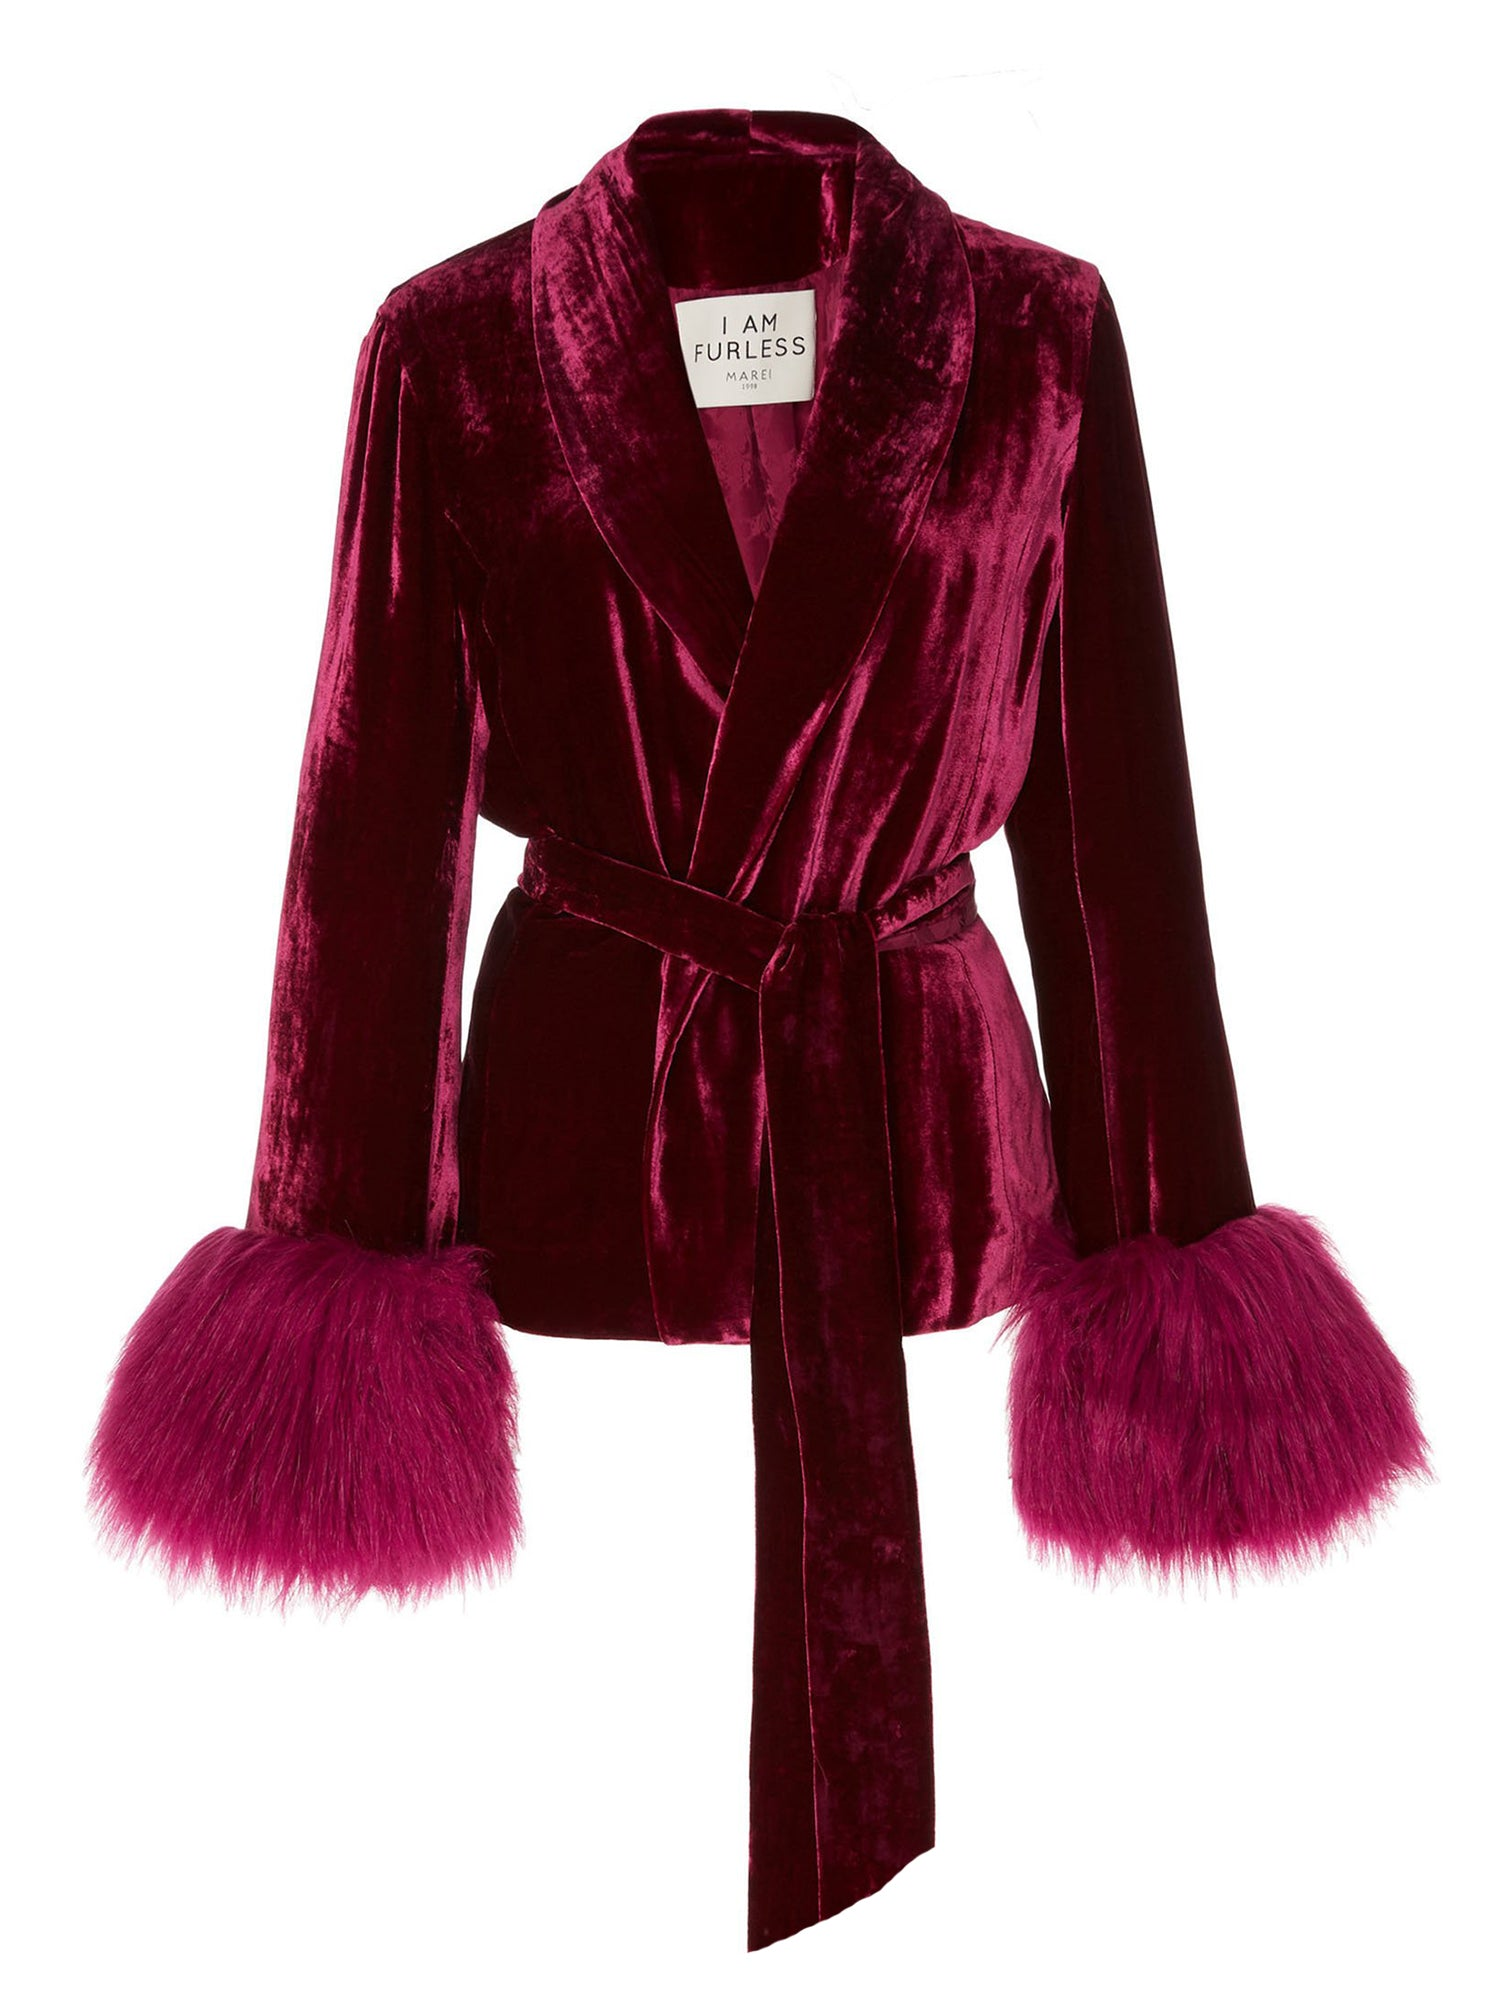 A Packshot Of Marei1998's Clarkia Silk Velvet Jacket In Bold Raspberry Color. Featuring Lapel Collar and Bell Sleeves, Trimmed With Faux Fur. Matching Tip-up Belt To Define The Waist. Front View. Resort 2020 Collection - Furless Friendship.